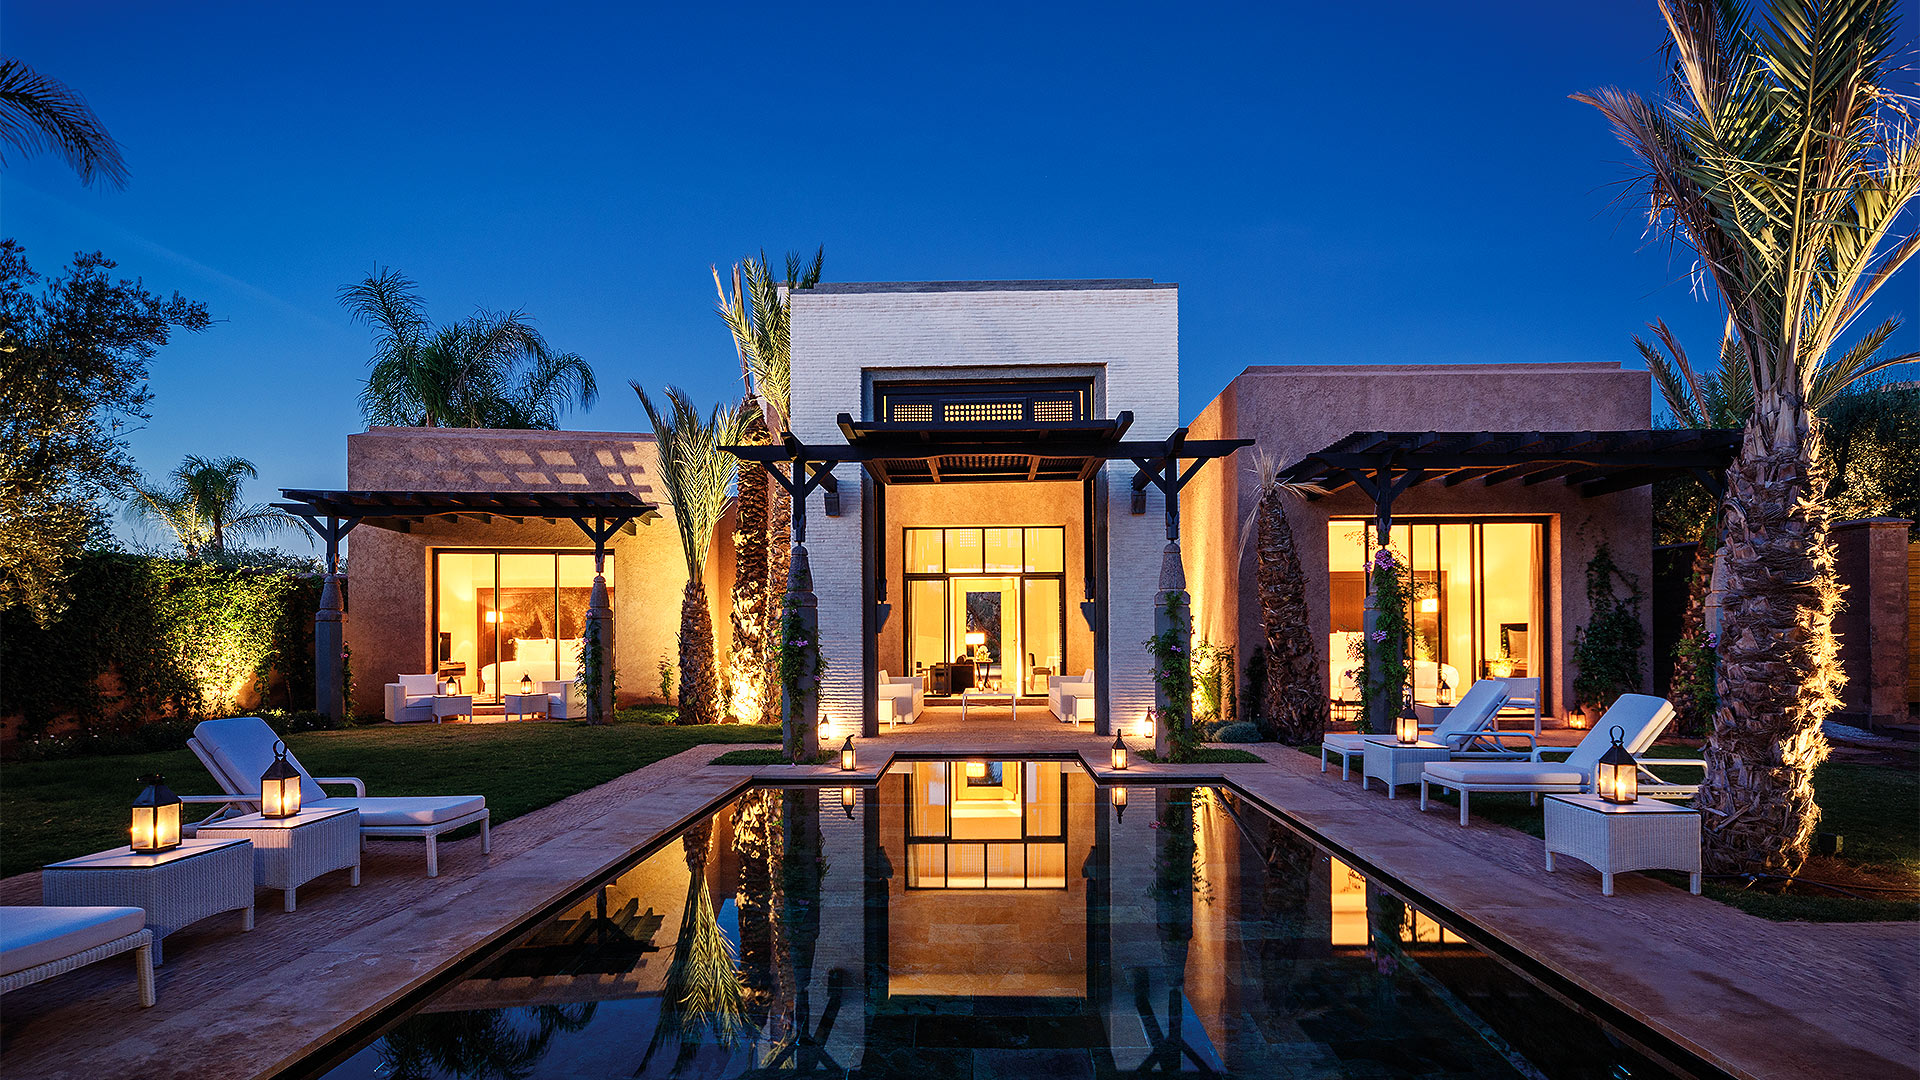 prince-villa-royal-palm-marrakech